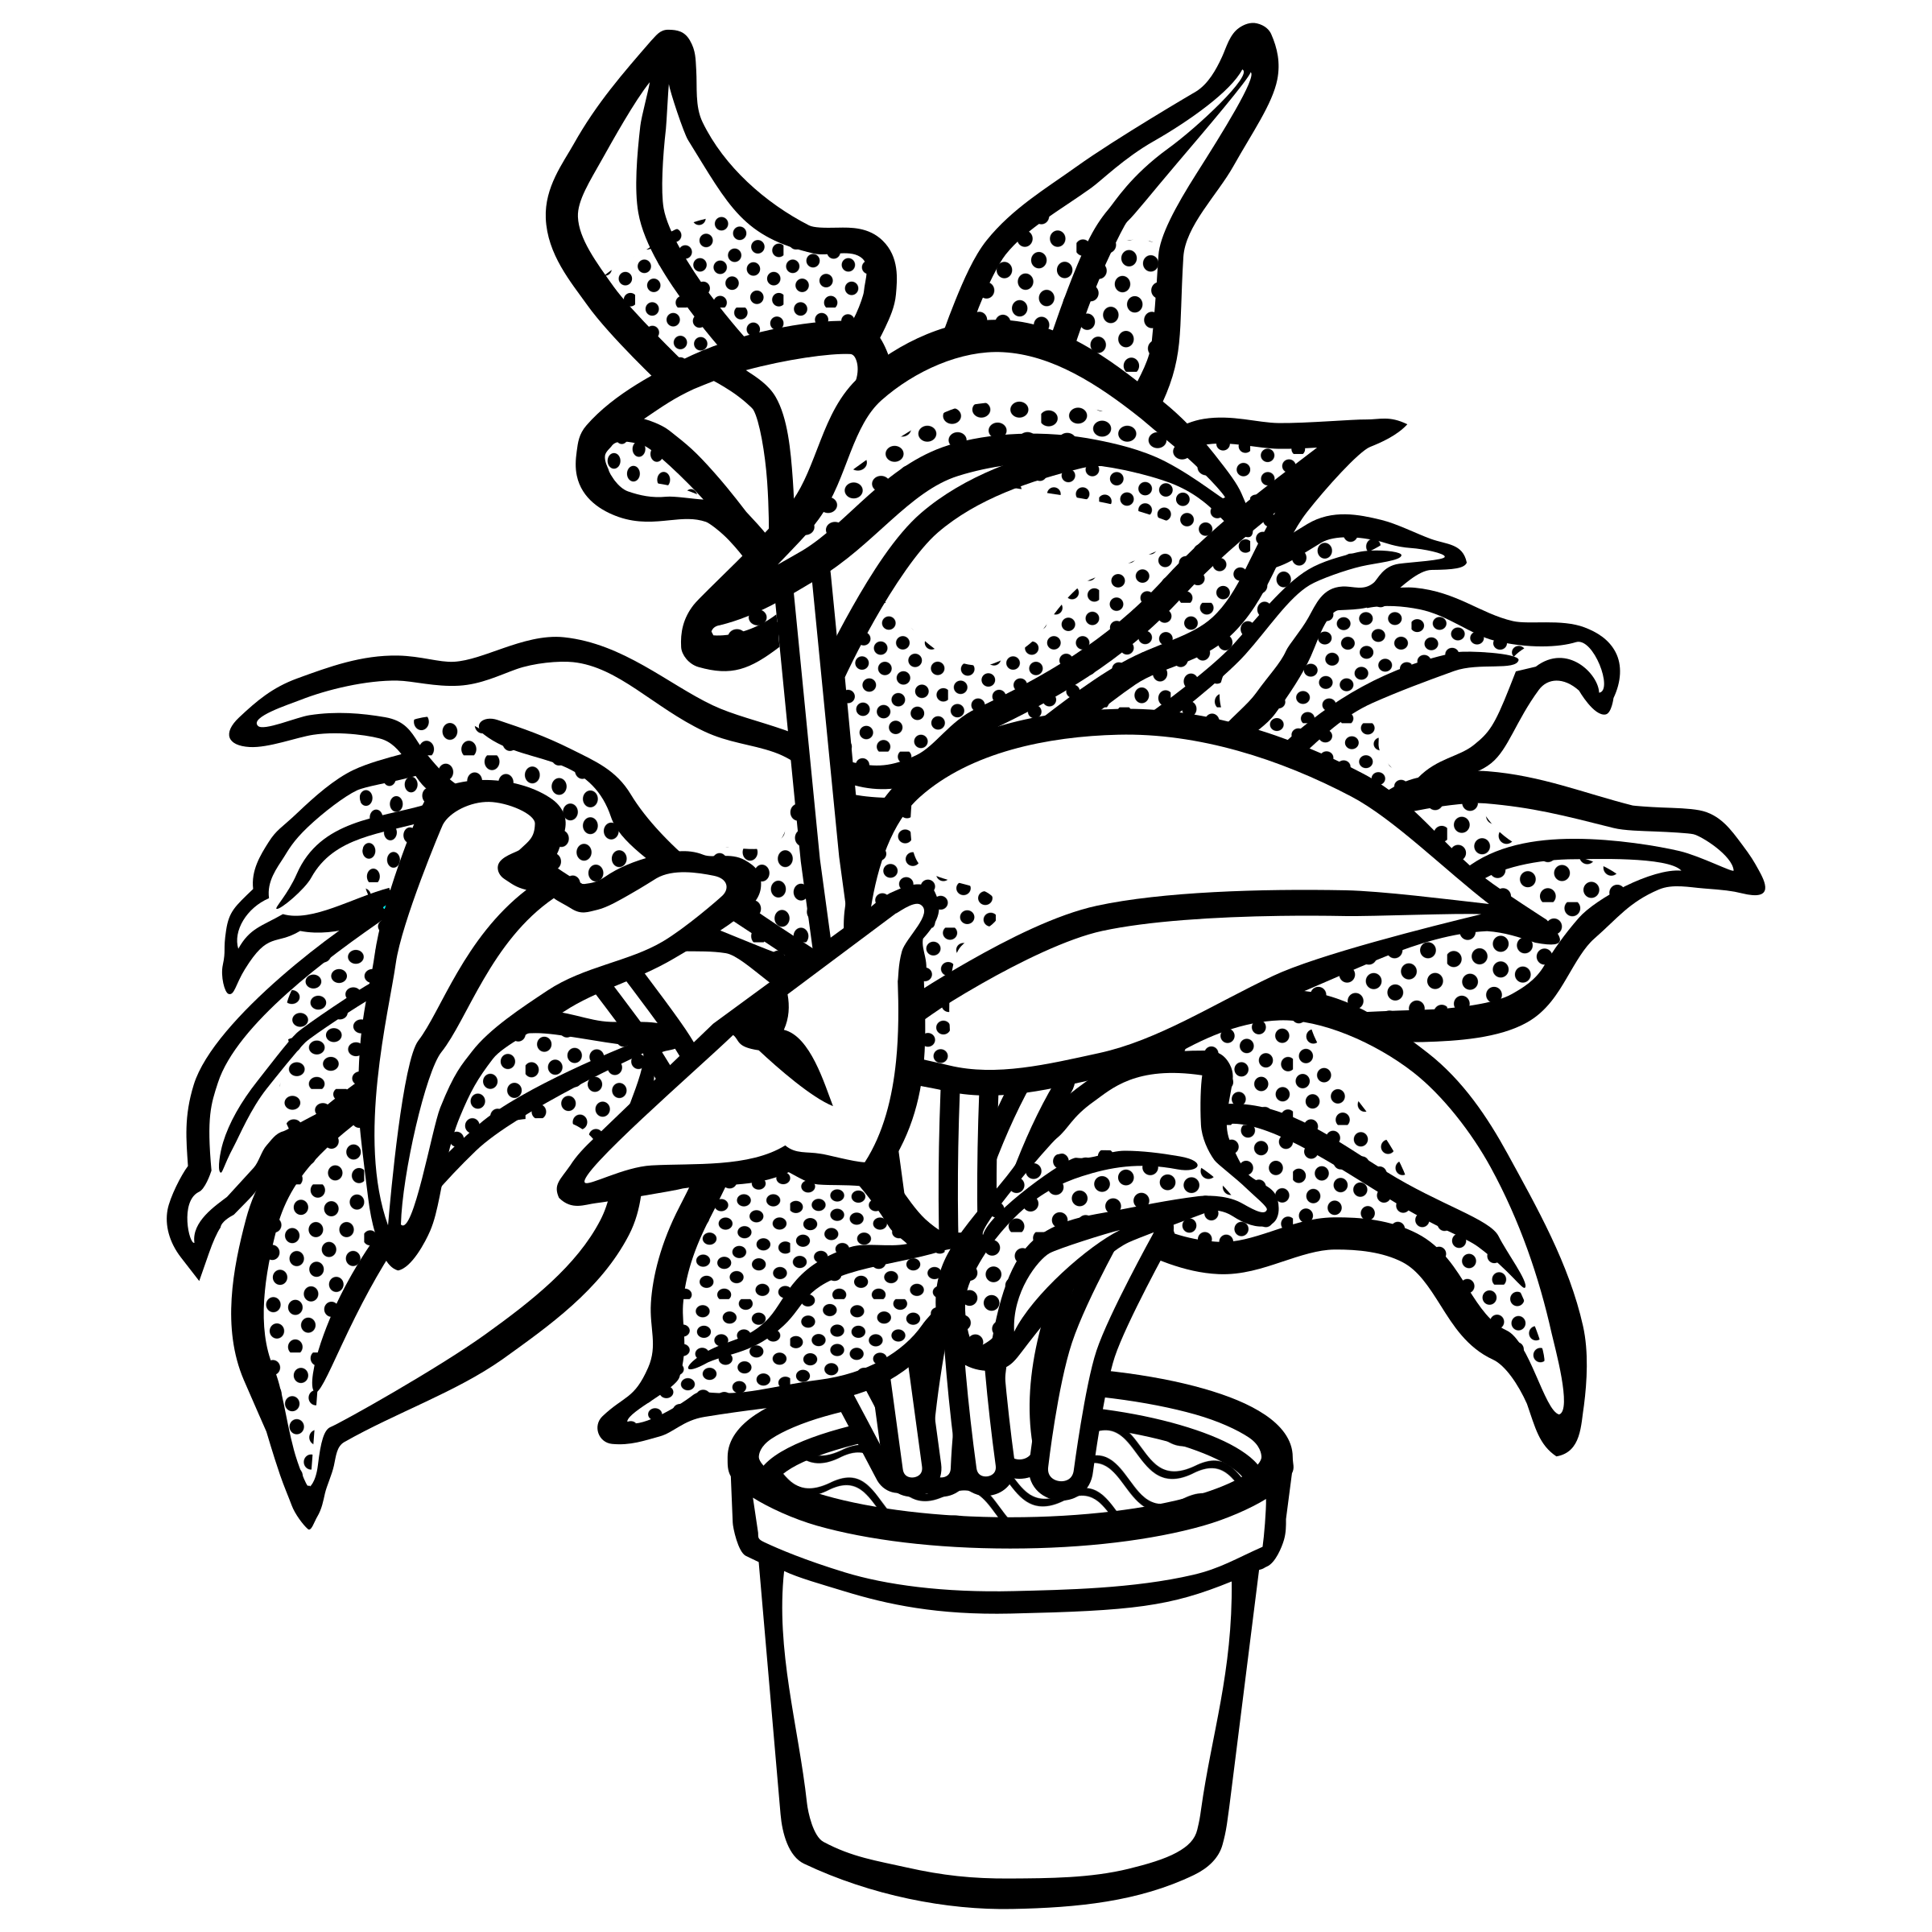 Plants clipart black and white 1 » Clipart Station.